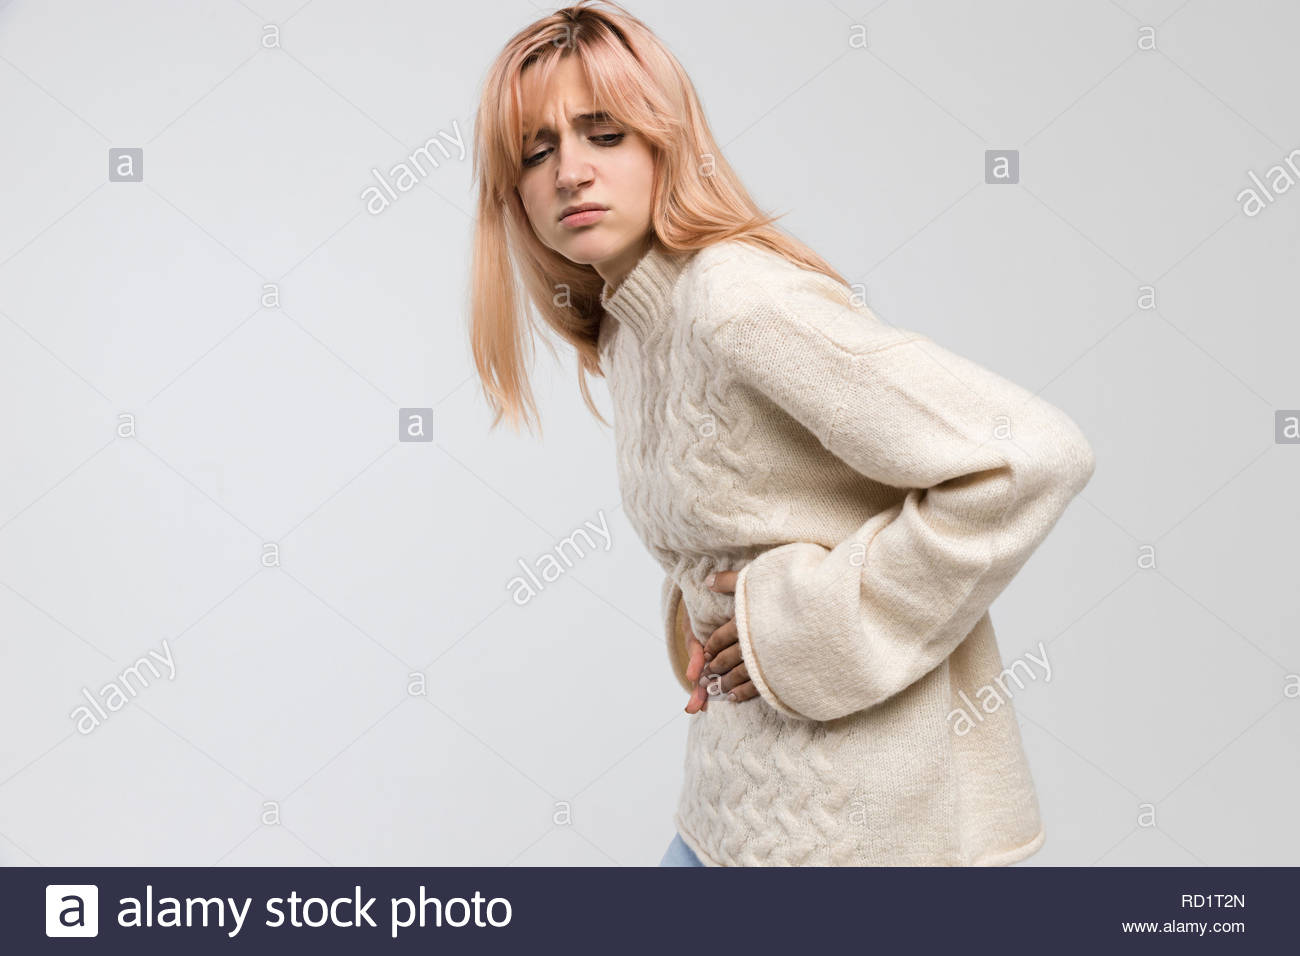 Close up shot of woman in white sweater suffering from stomach ache, having menstruation pain, feels bad, abdominal cramps, side view, PMS. - Stock Image